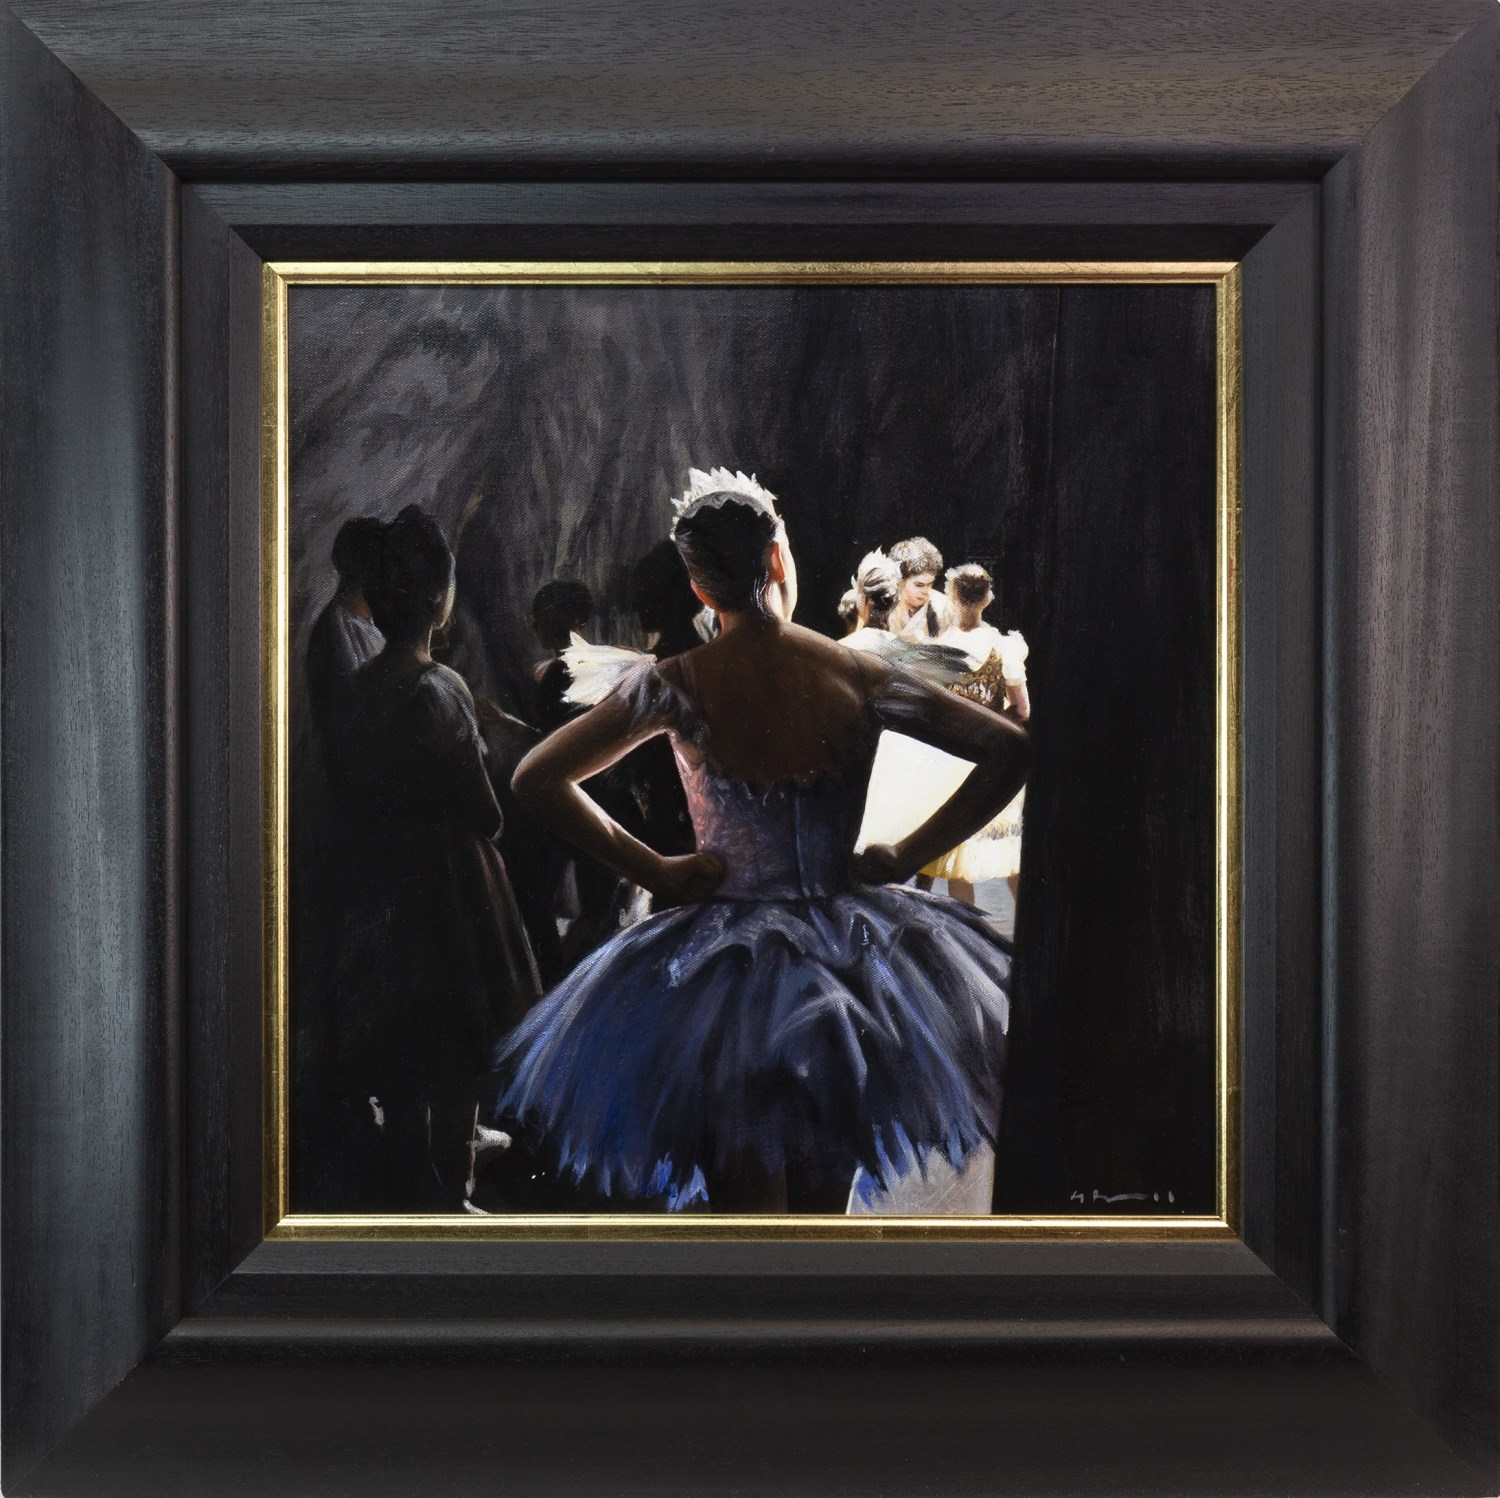 Lot 45 - THE VIEW FROM BACKSTAGE, AN OIL ON CANVAS BY GERARD BURNS